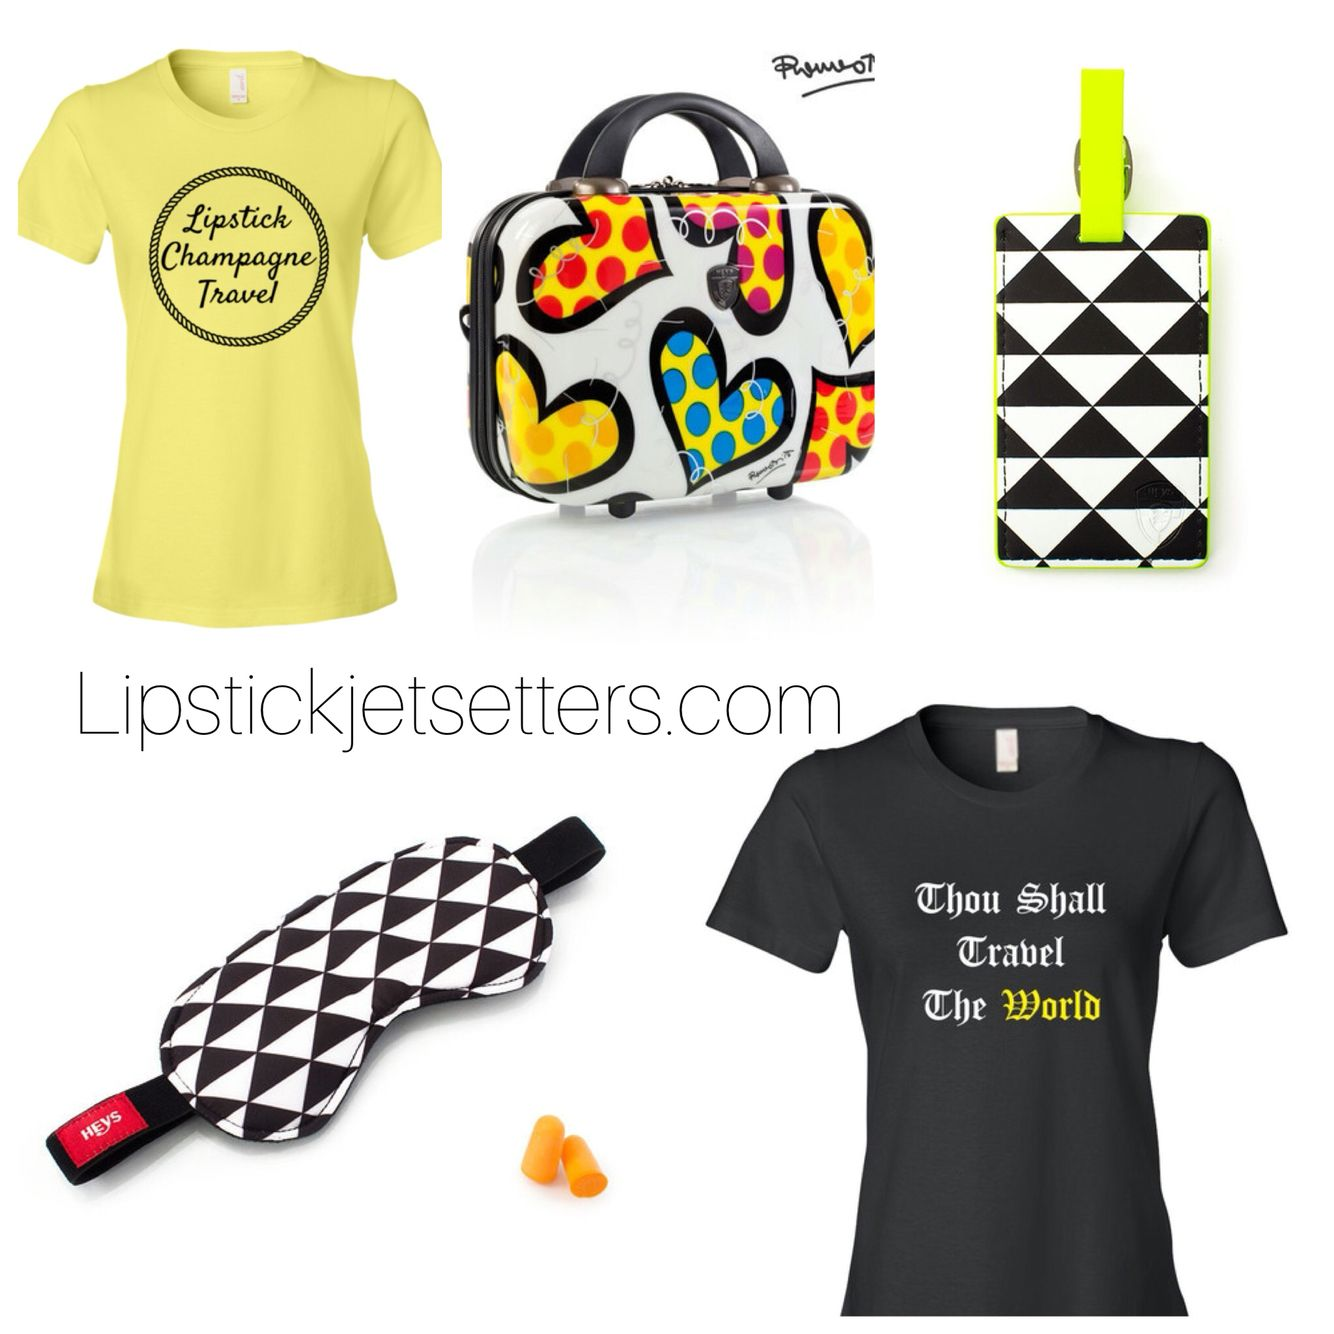 Thou shall travel the world t-shirt. Lipstick, champagne, and travel t-shirt. Travel in style with Lipstick Jetsetters.